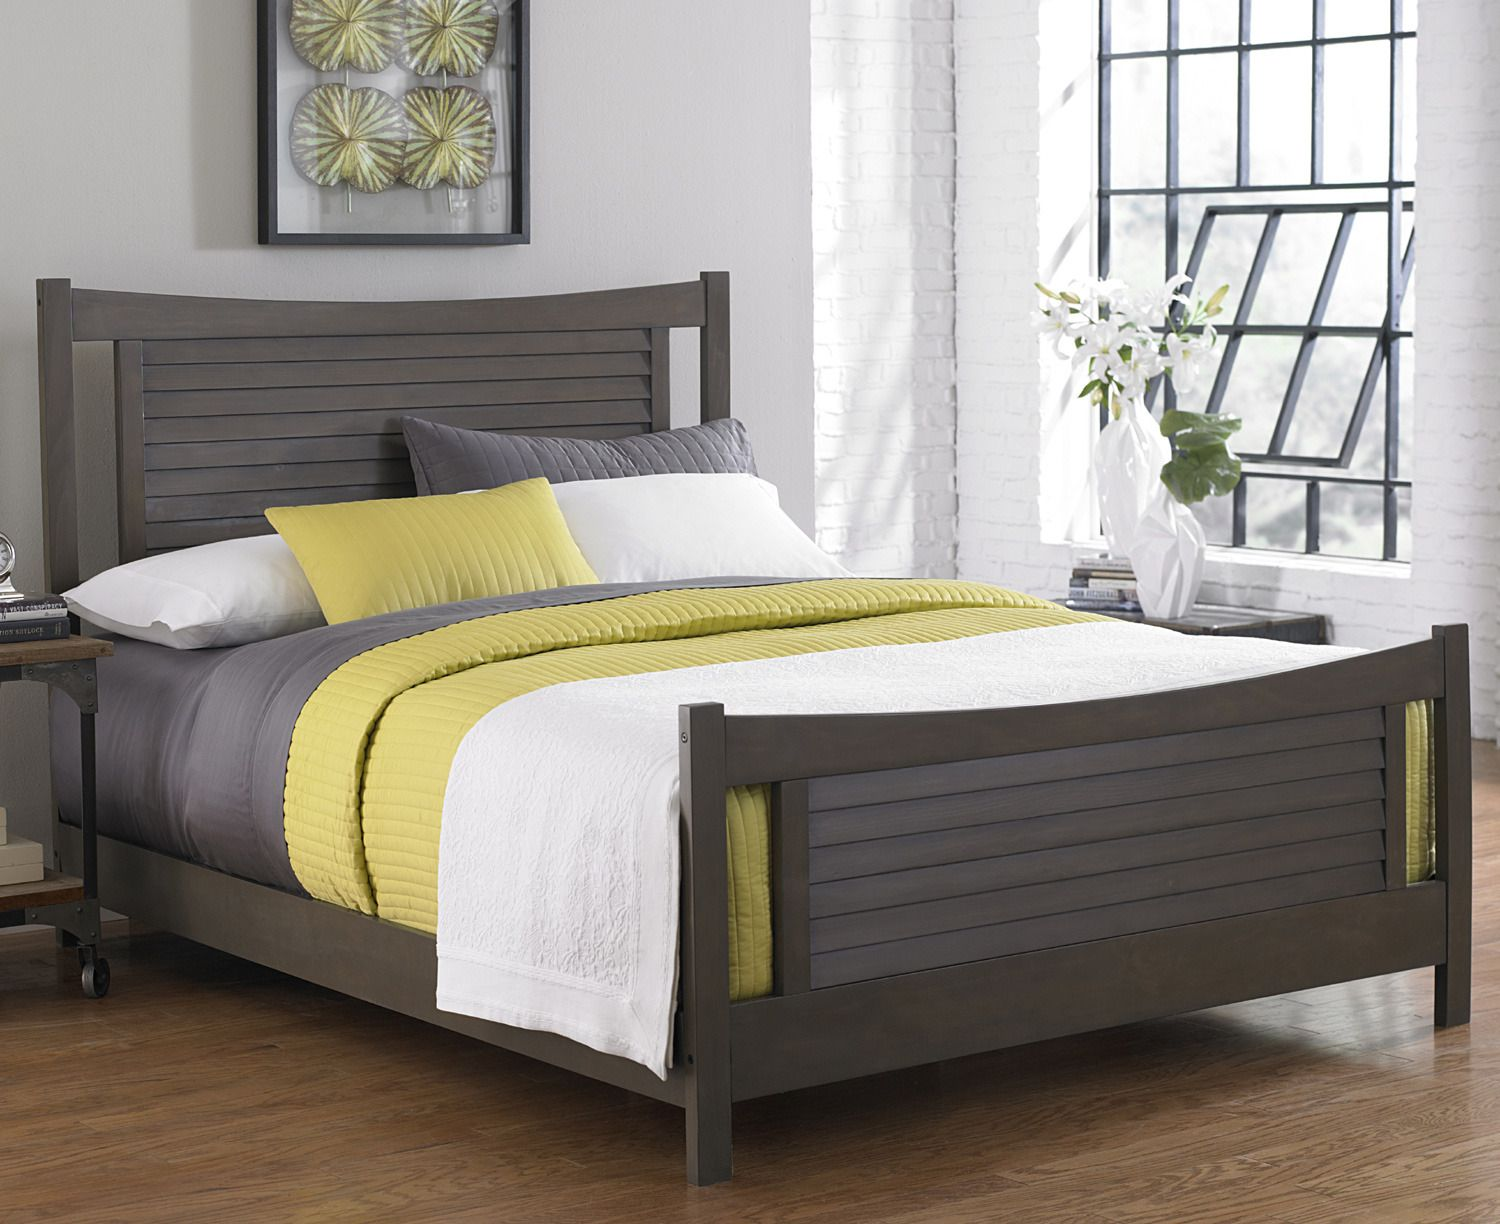 Queen Ardmore Driftwood Bed | Fashion Bed Group | Home Gallery ...